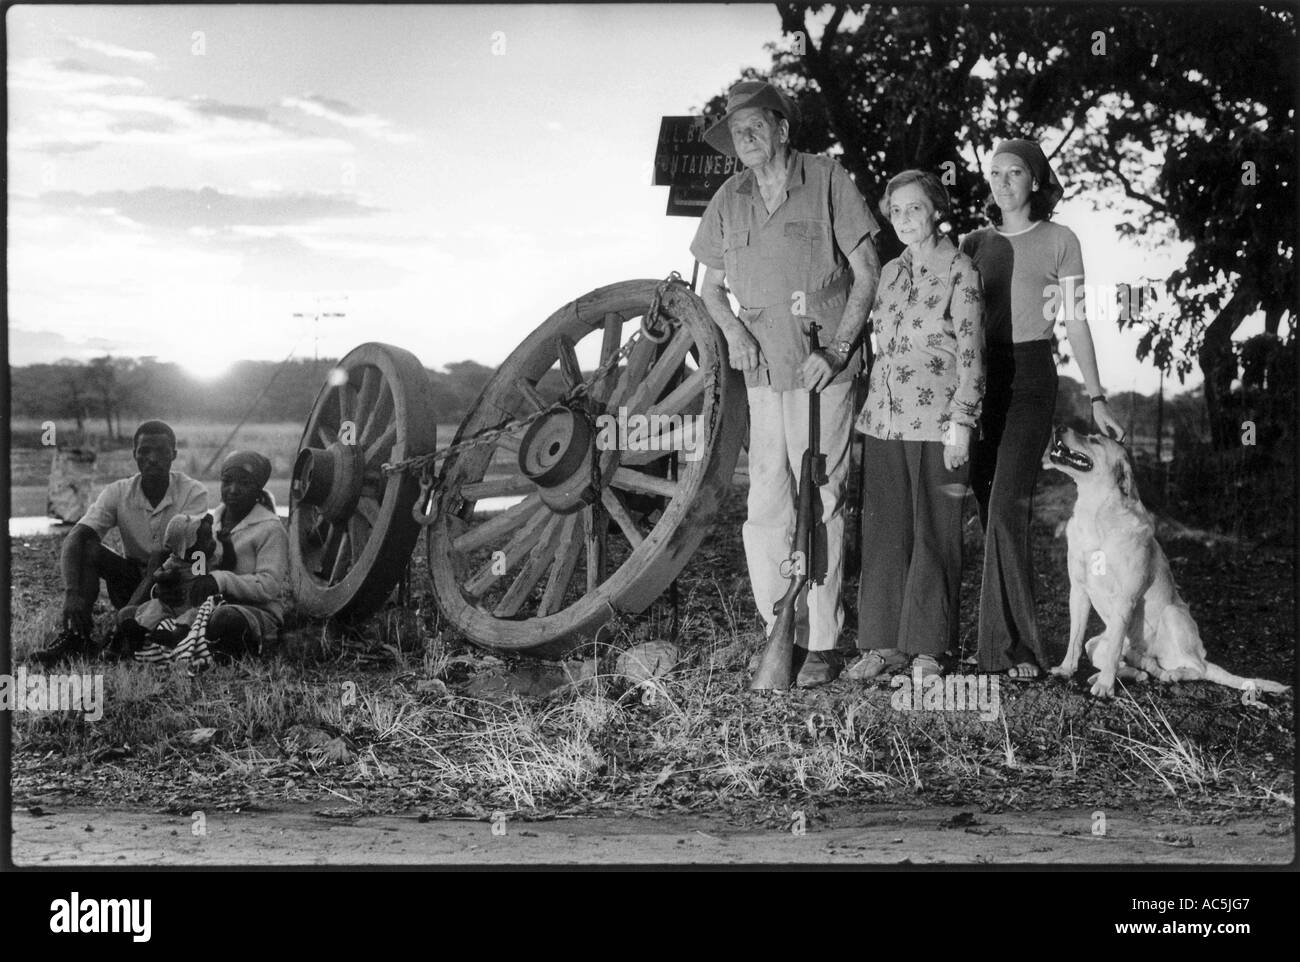 Rhodesian  pioneer farmers outside their farm near (Salisbury) Harare.The wagon wheels are all that is left from the trek. - Stock Image